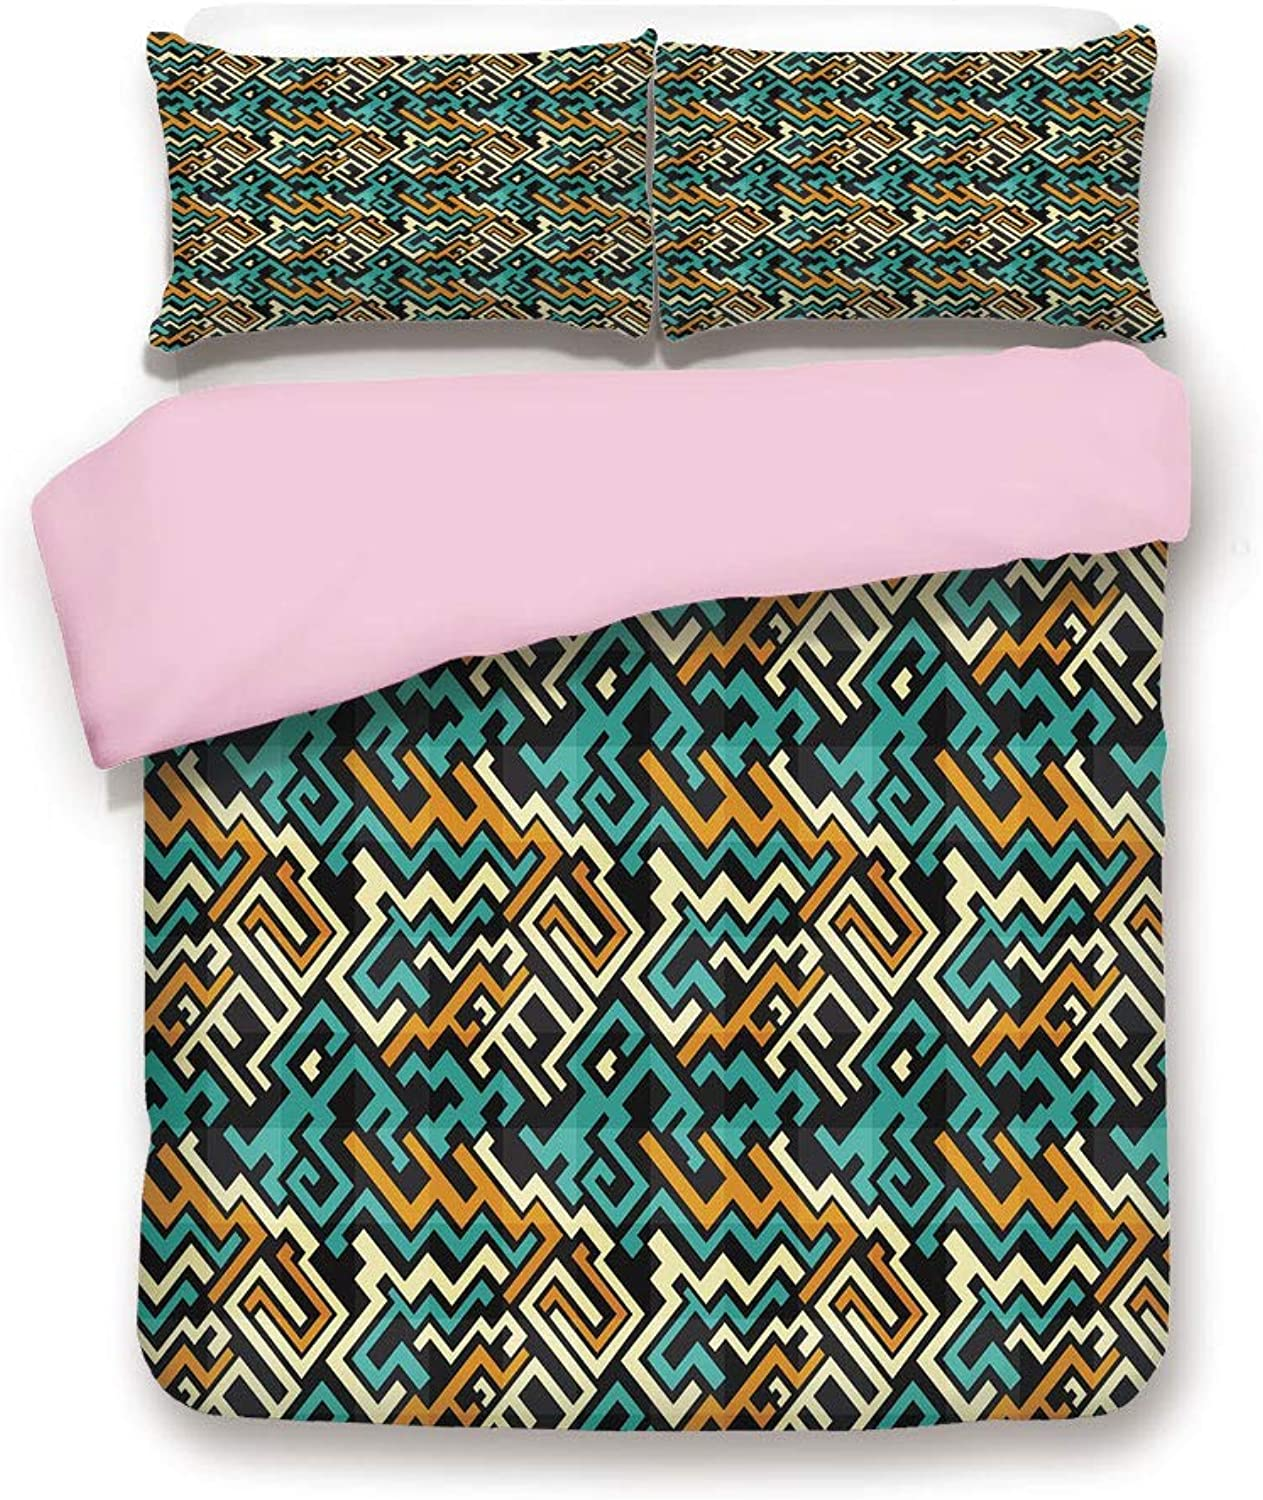 Pink Duvet Cover Set,Queen Size,Abstract Modern Future Inspiration Line Art Surreal Design Decorative,Decorative 3 Piece Bedding Set with 2 Pillow Sham,Best Gift For Girls Women,Turquoise Marigold Pal